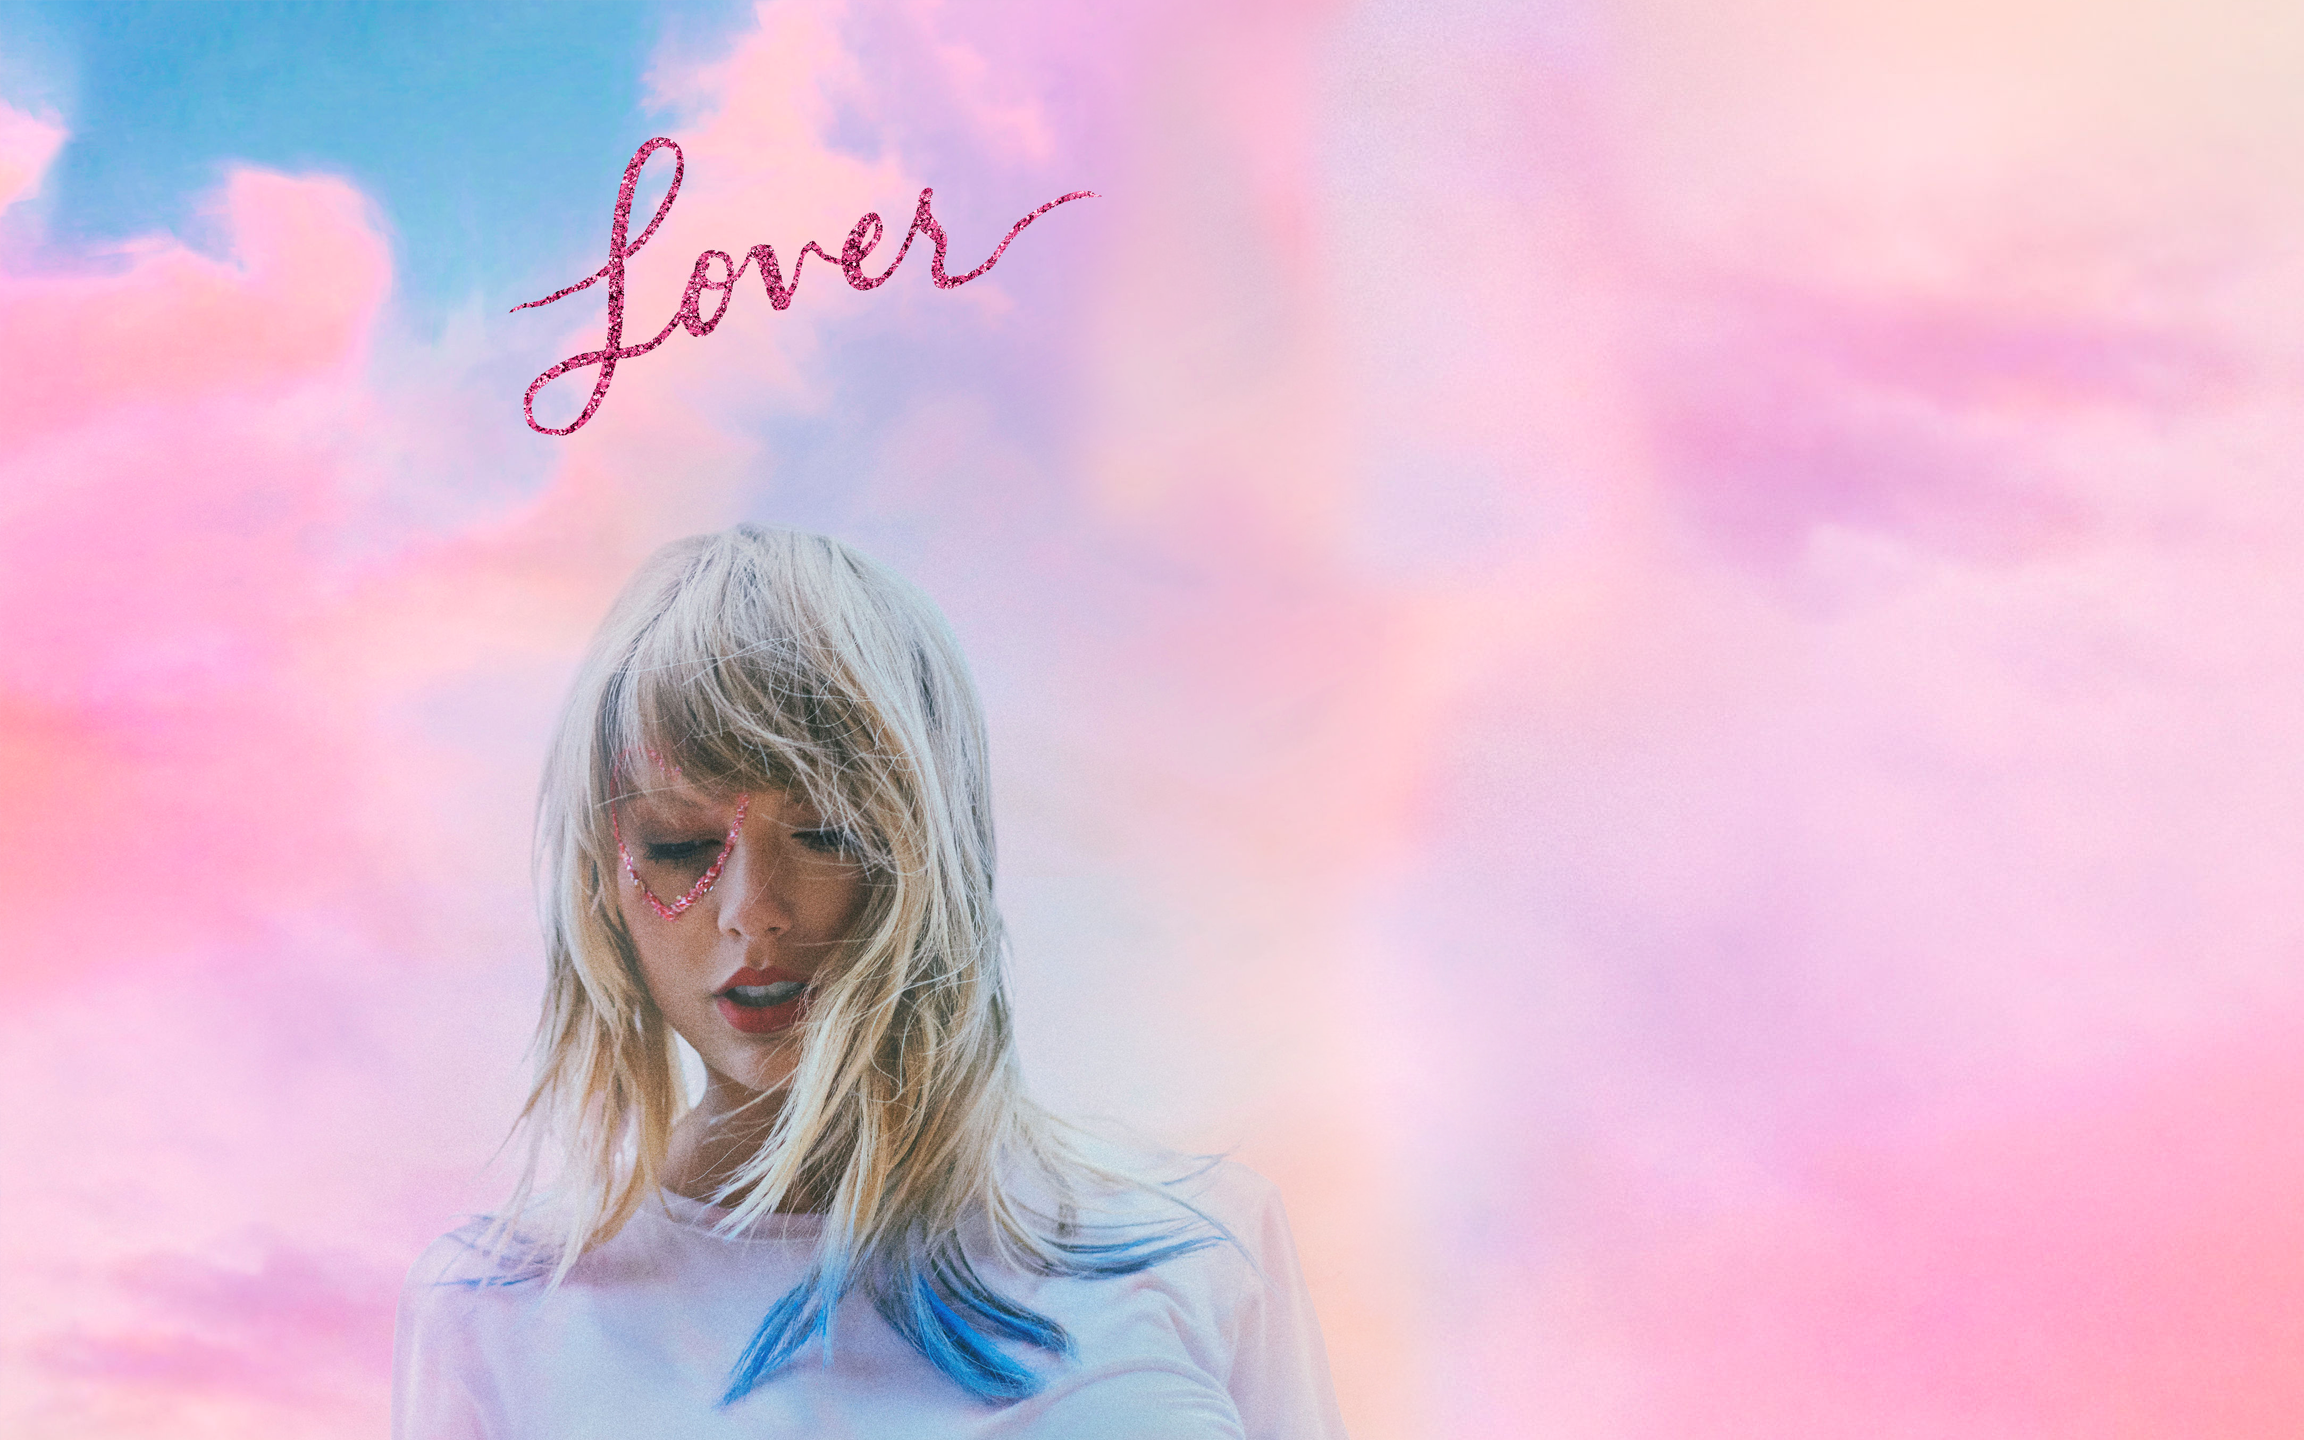 Made a desktop wallpaper featuring the Lover album cover and 2304x1440